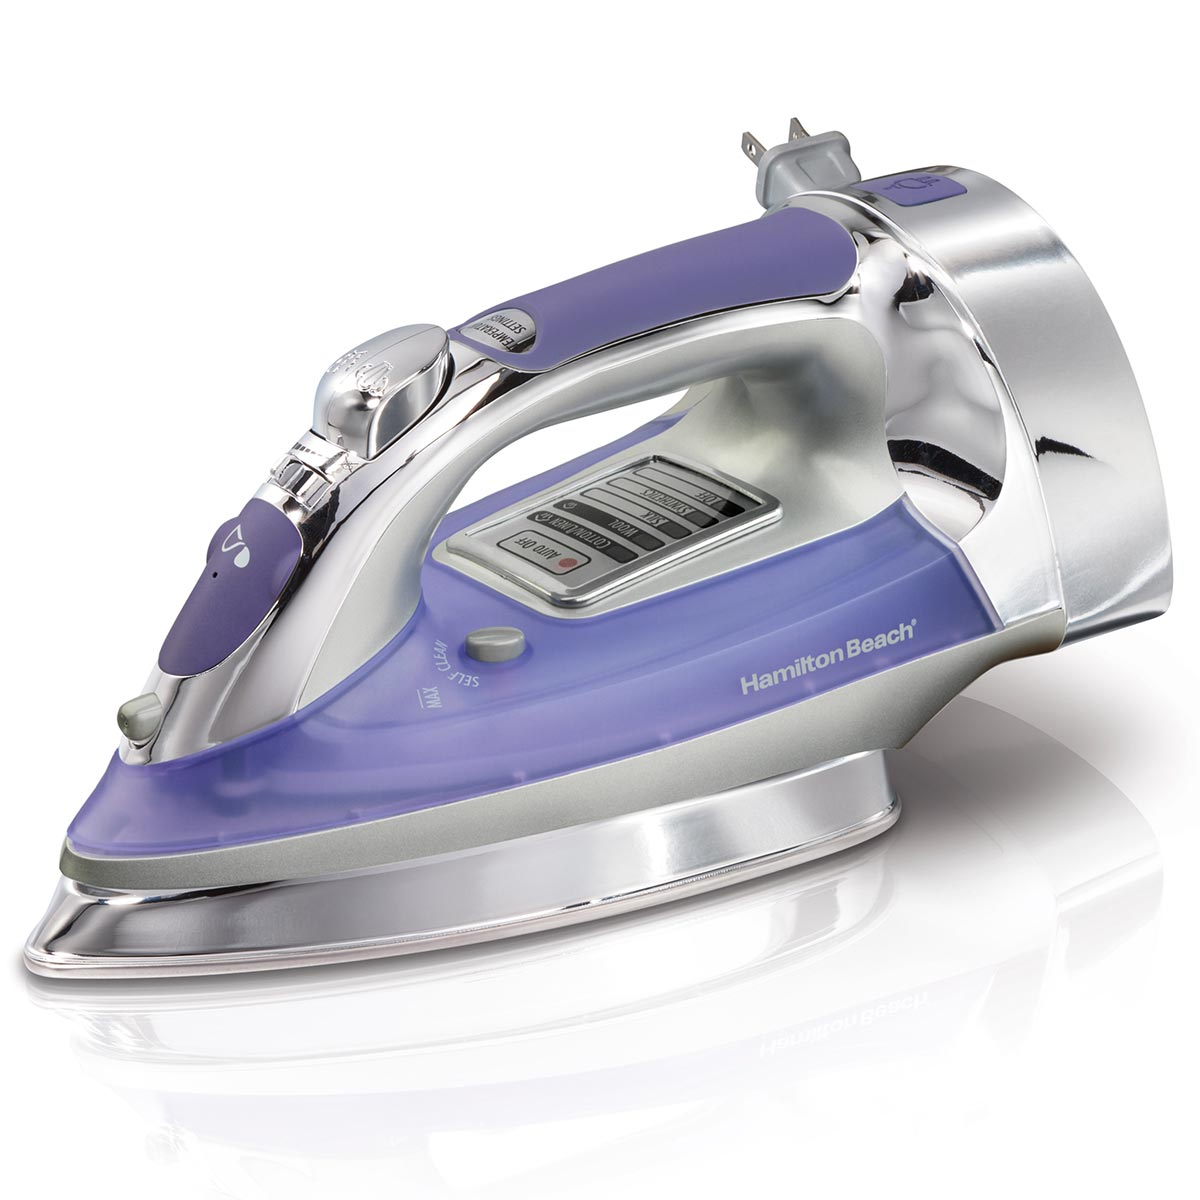 Electronic Iron with Retractable Cord (14956)